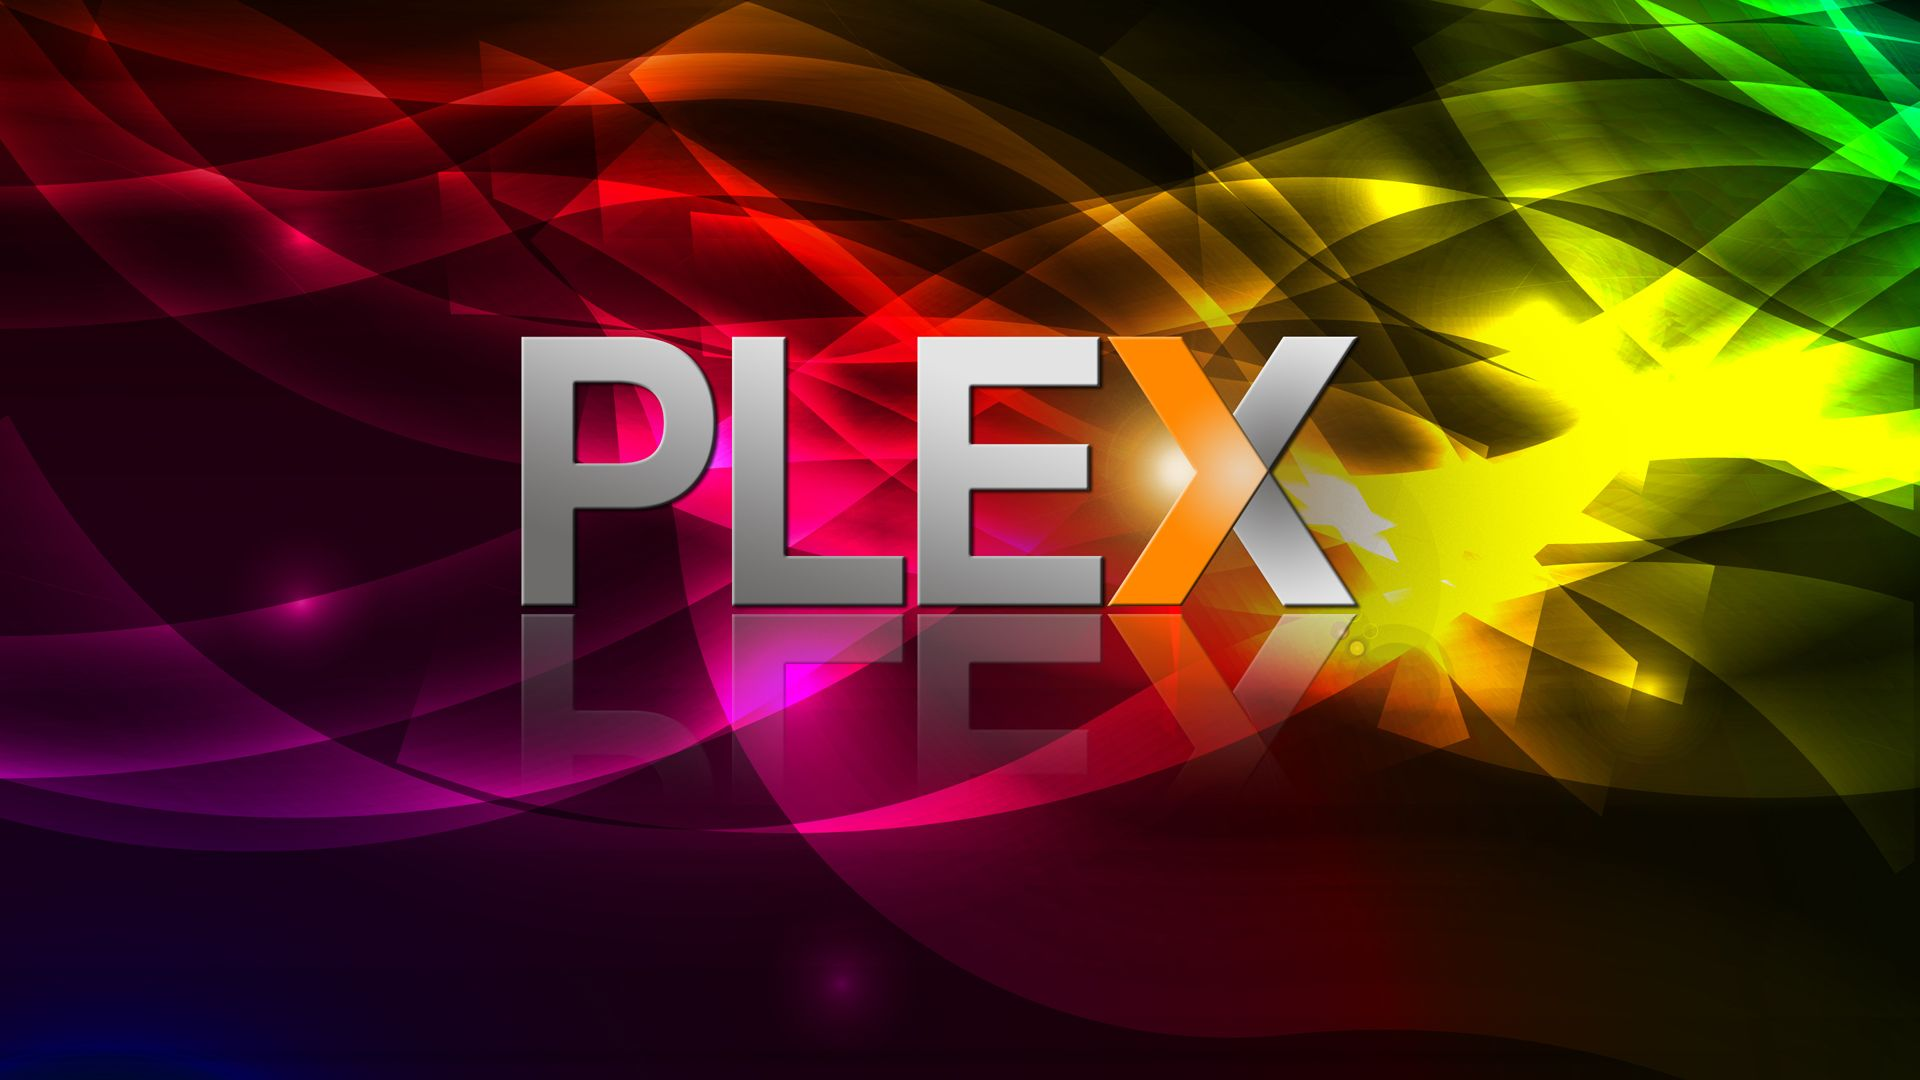 Plex 4k Desktop Wallpapers Top Free Plex 4k Desktop Backgrounds